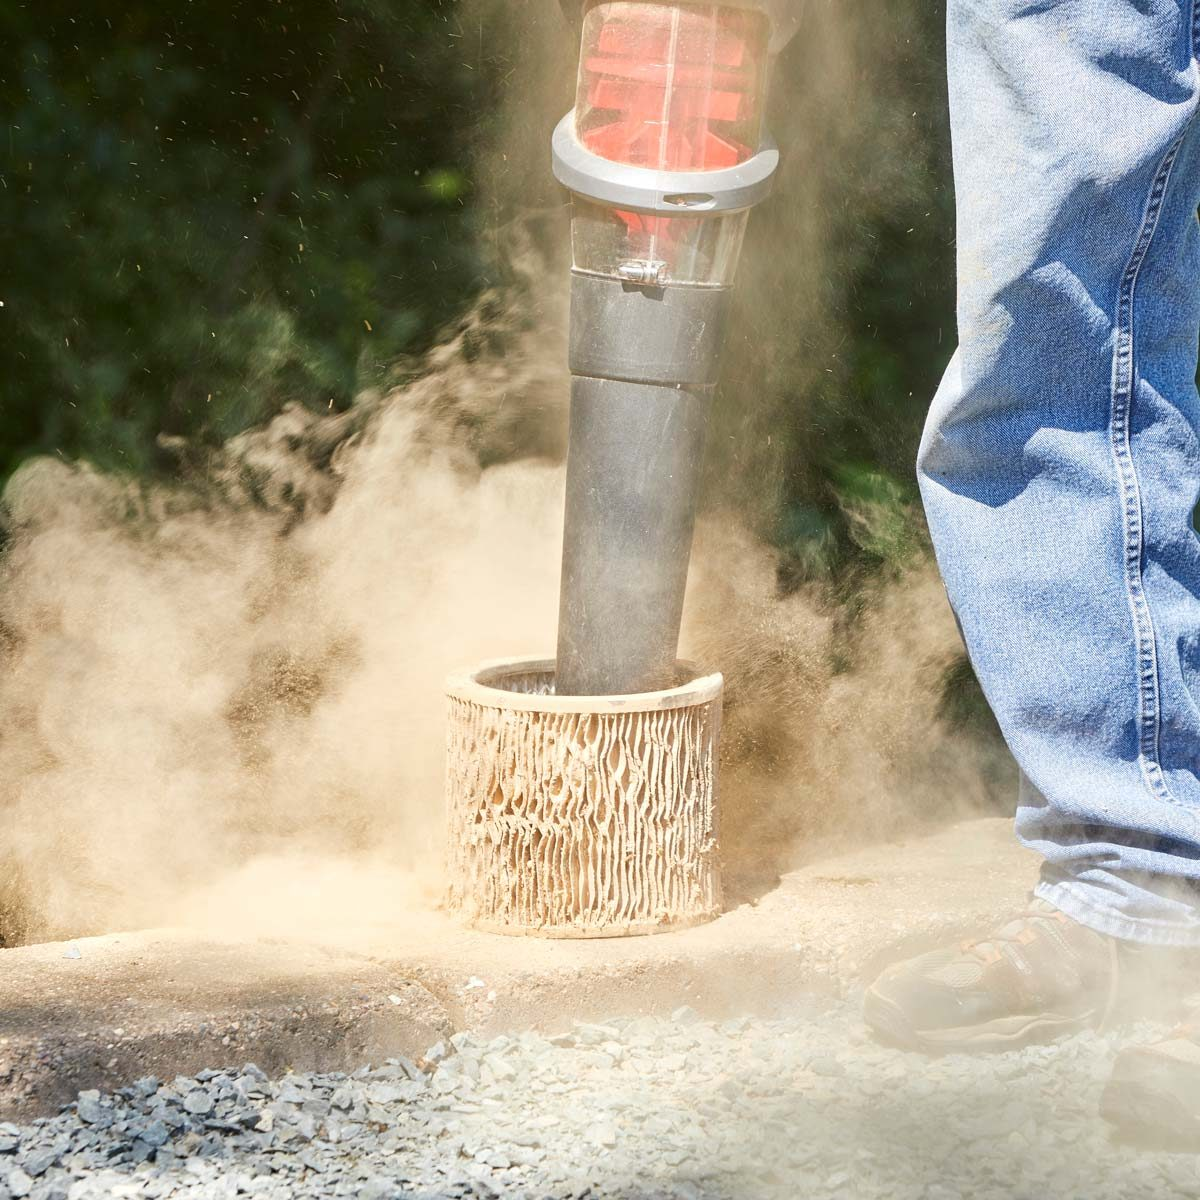 12 Brilliant Uses for Your Leaf Blower